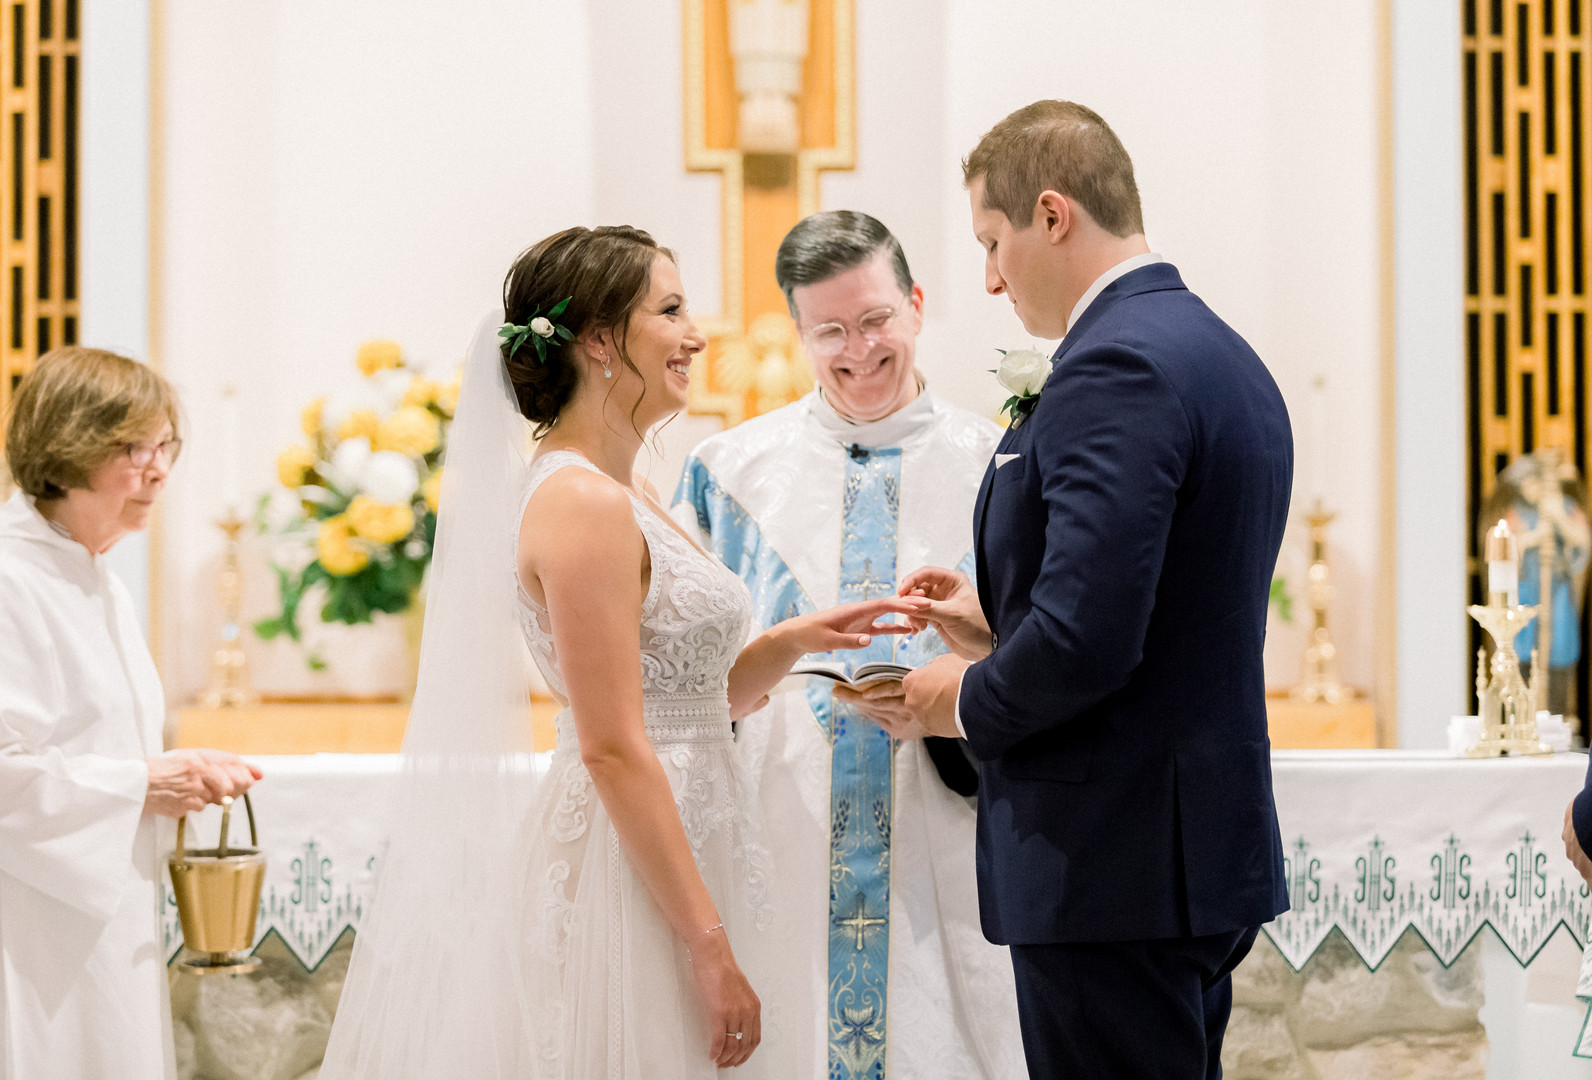 Terry and Keith's Wedding - 19.jpg